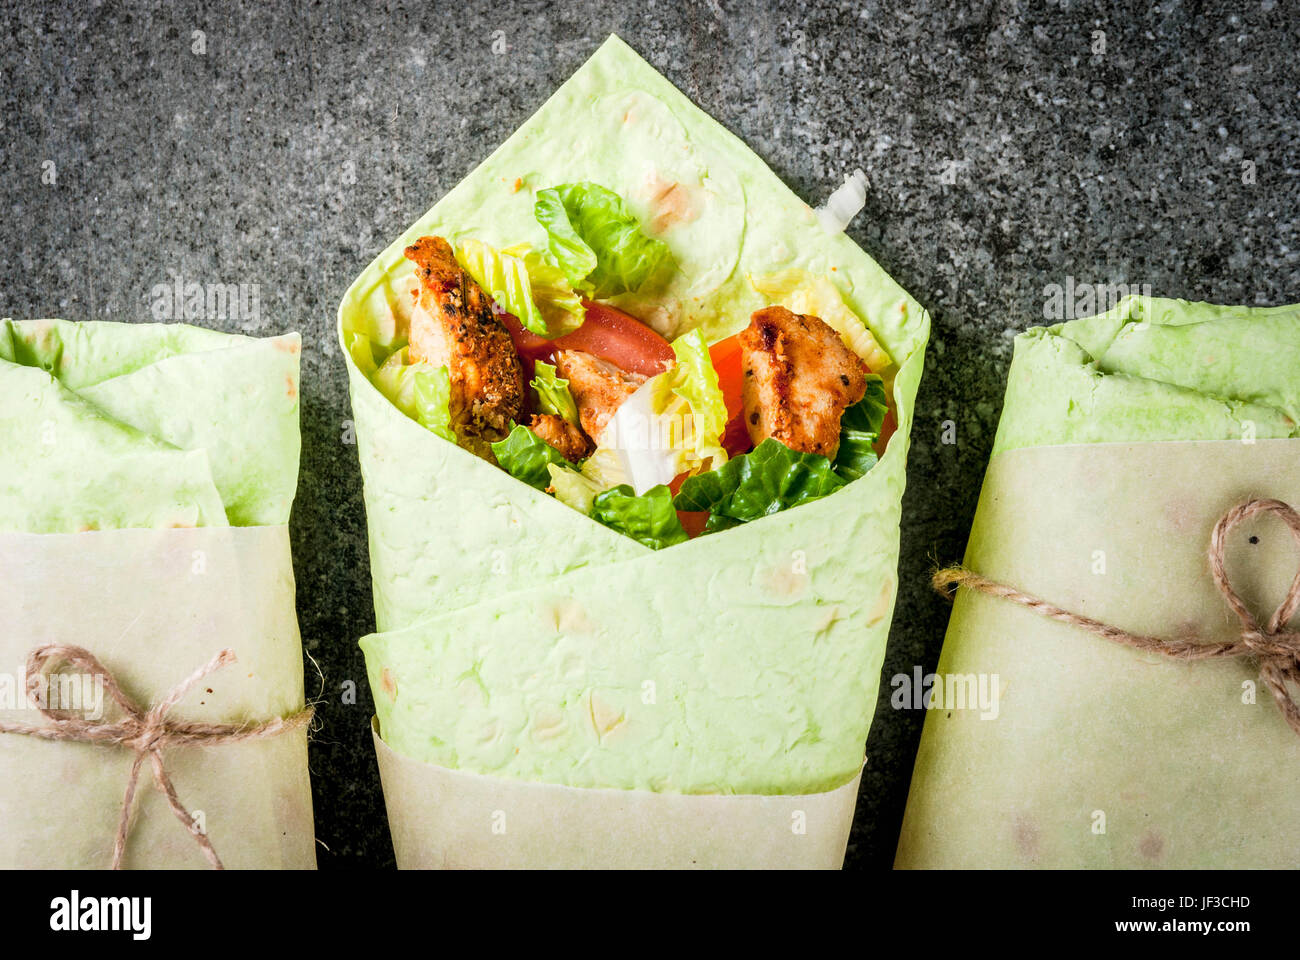 Mexican food. Healthy eating. Wrap sandwich: green lavash tortillas with spinach, fried chicken, fresh greens salad, - Stock Image